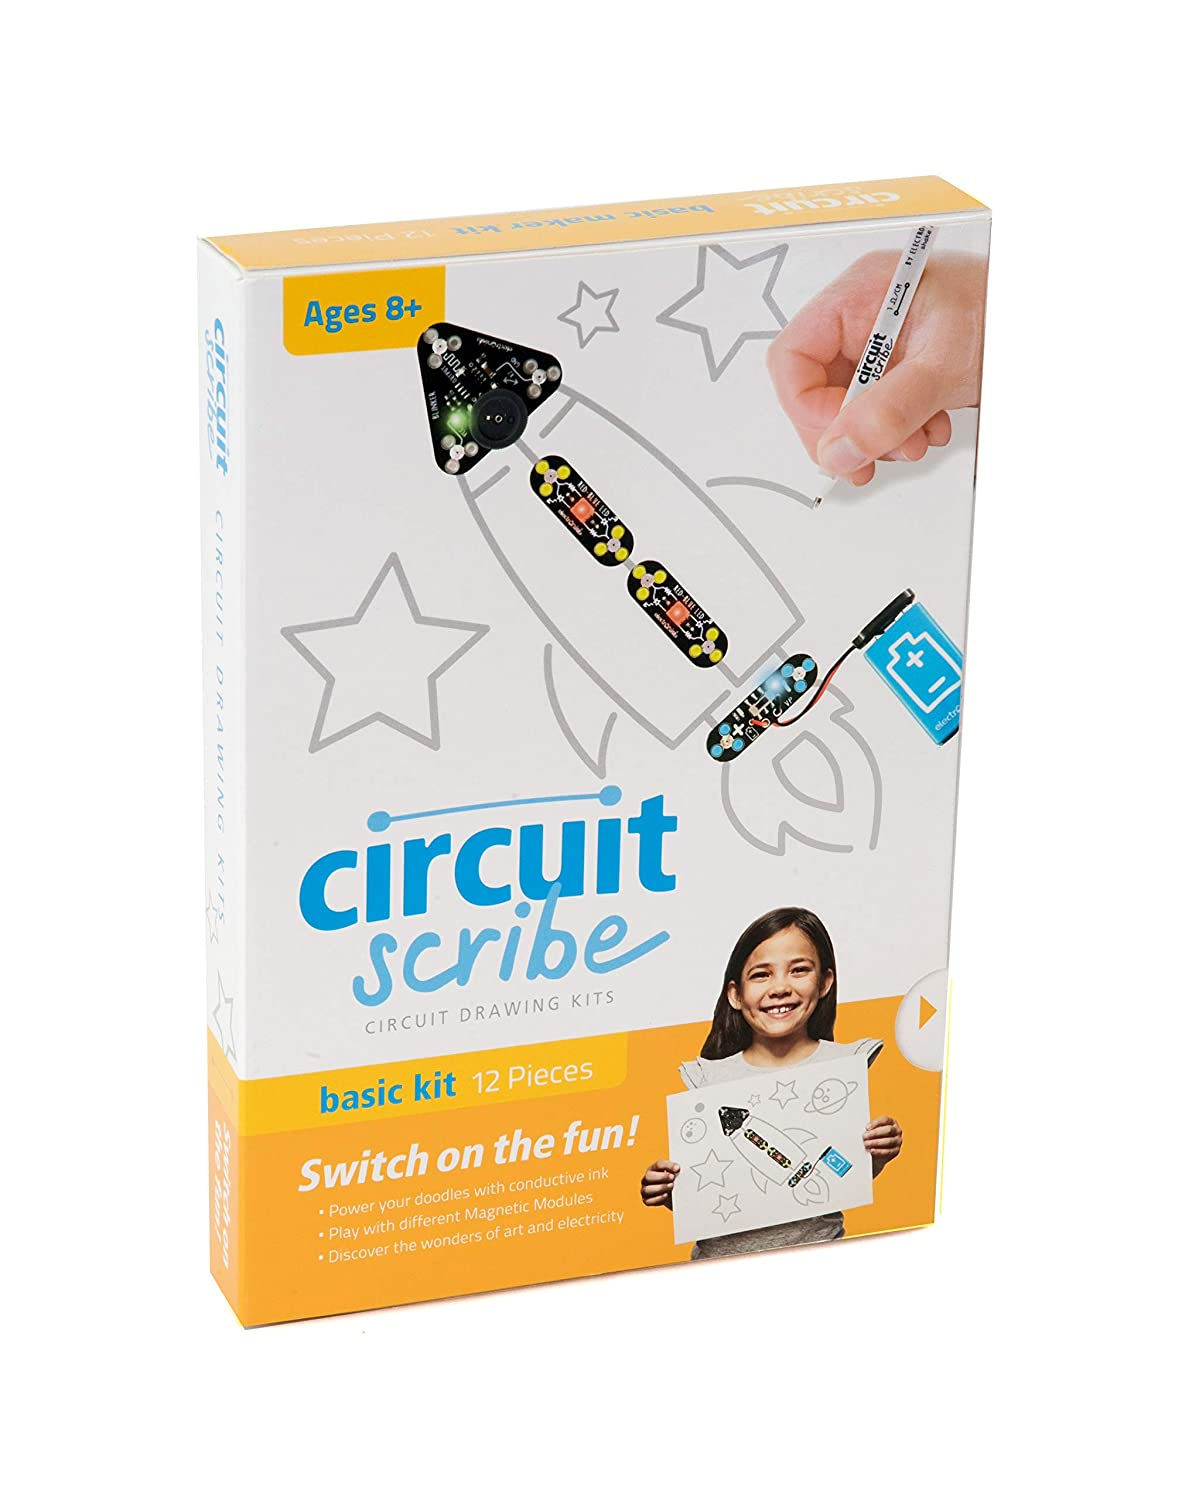 Circuit Scribe Basic Kit Includes Conductive Silver Fun And Easy To Build Buzzer Ink Pen Learn Explore Create Your Own Circuits Switches Toys Games